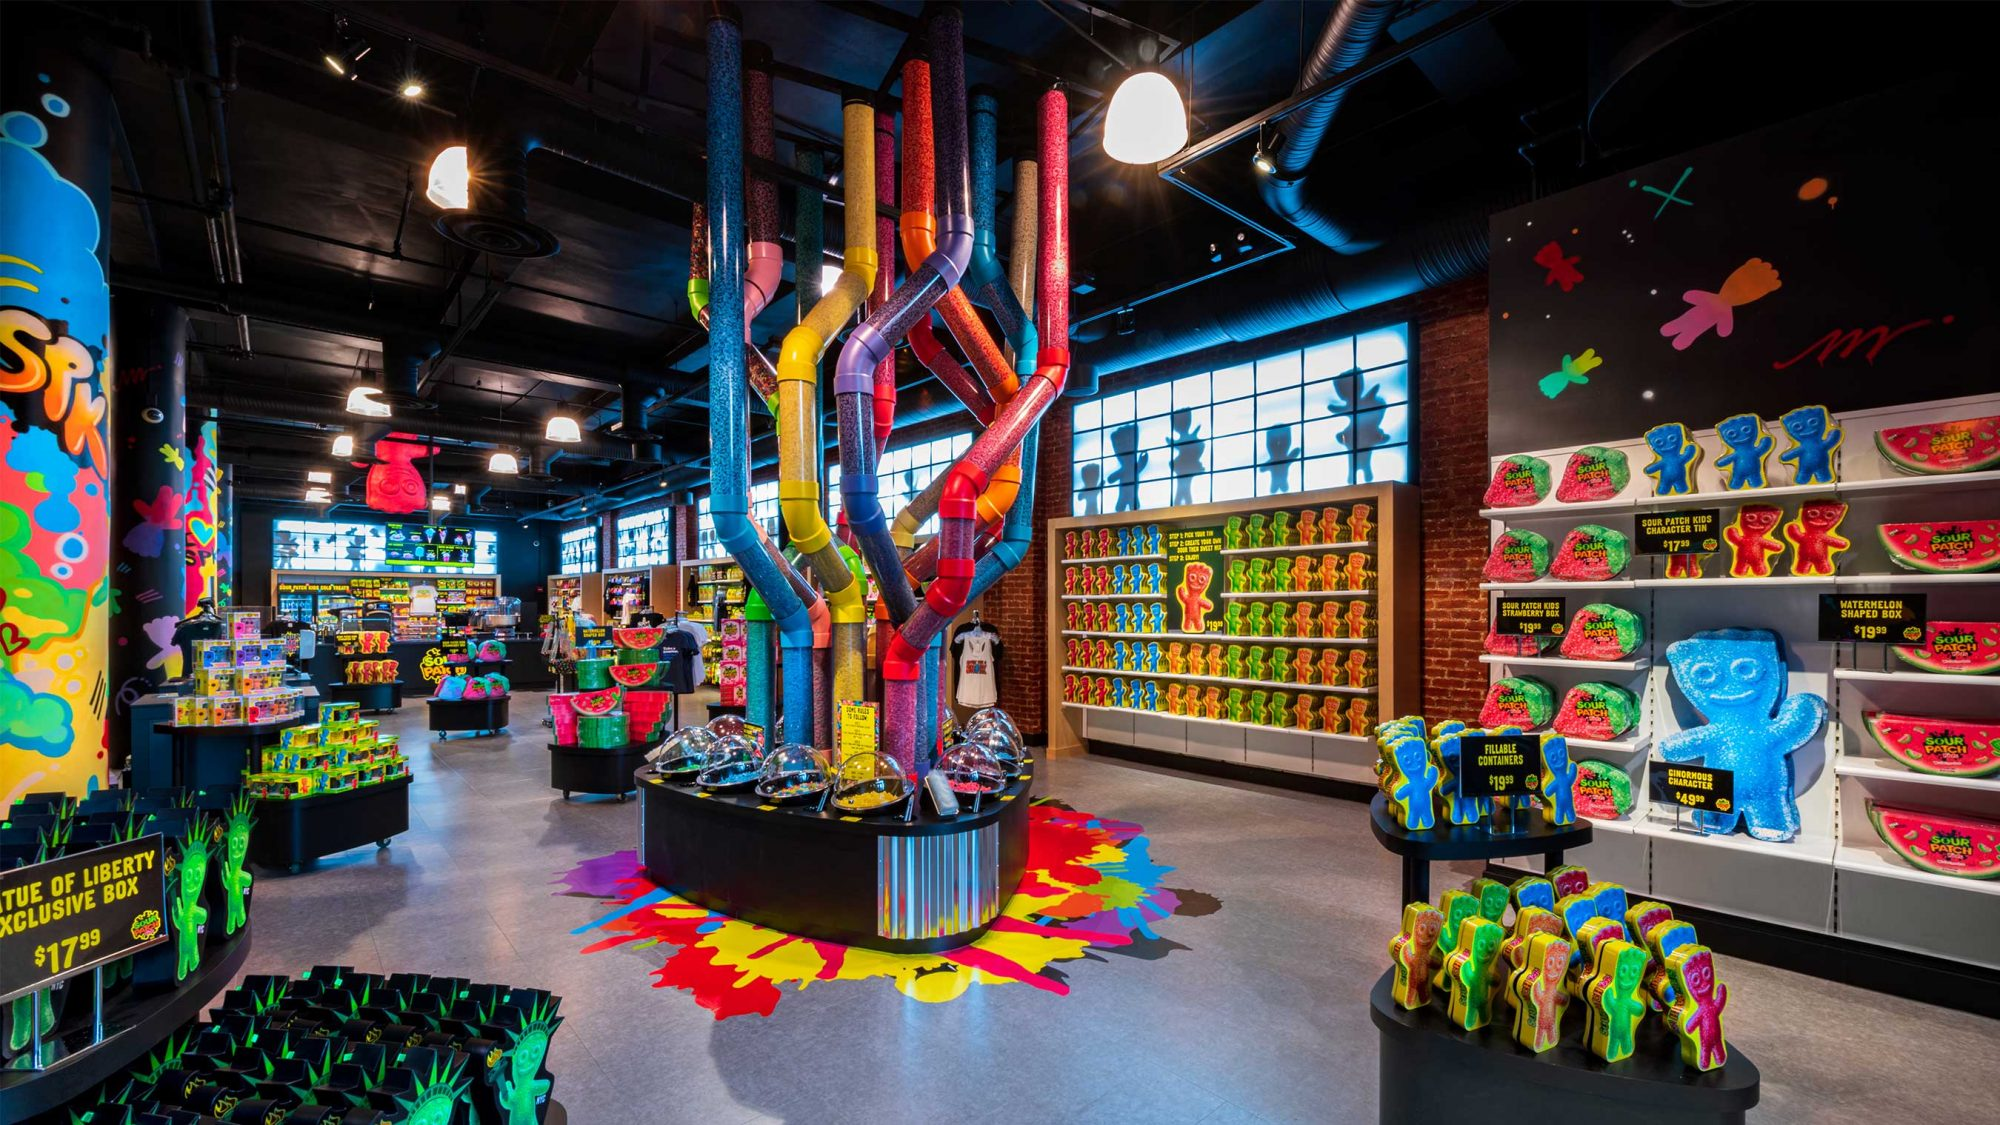 A view of the Sour Patch Kids Store in in New York City